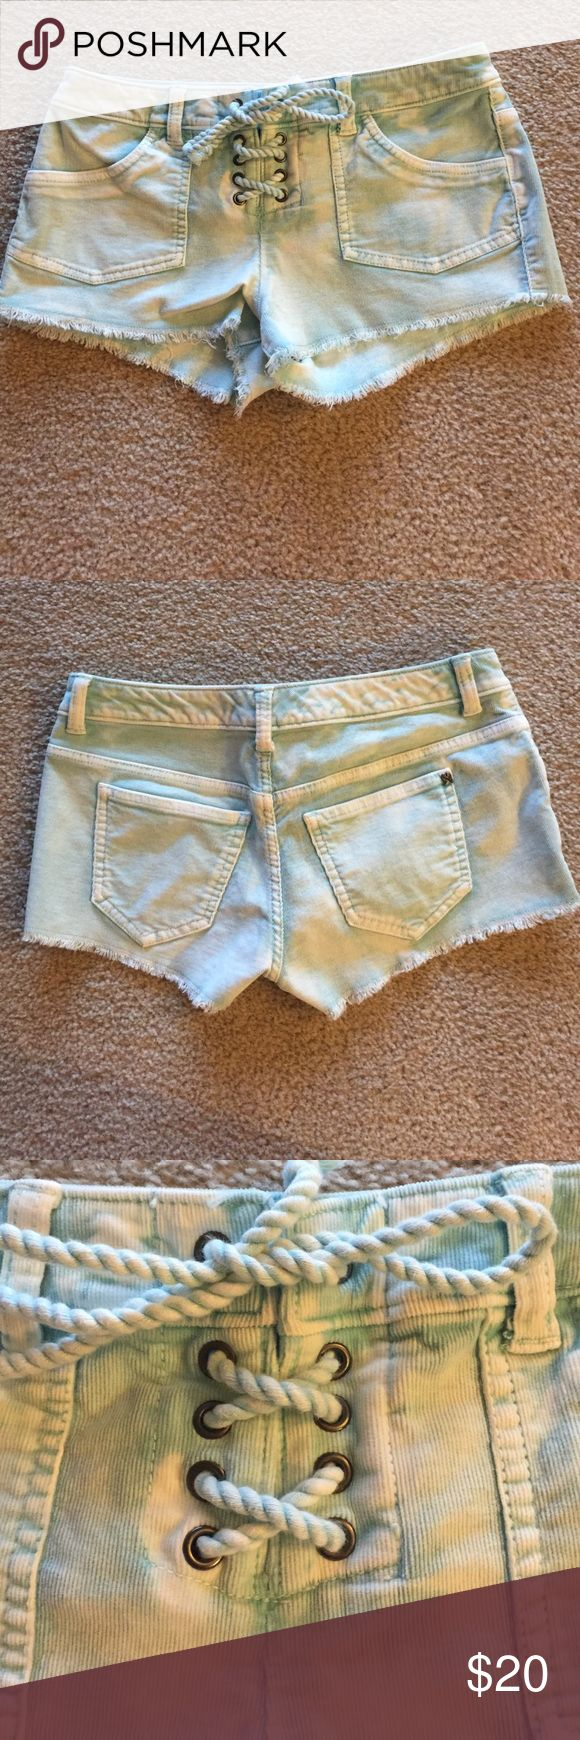 Victoria's Secret Boyfriend Short Sz 0 Aqua shorts that tie in the front. The waist measures about 14' and the inseam is 2.' These are adorable shorts and the color is beautiful. NWOT Victoria's Secret Shorts